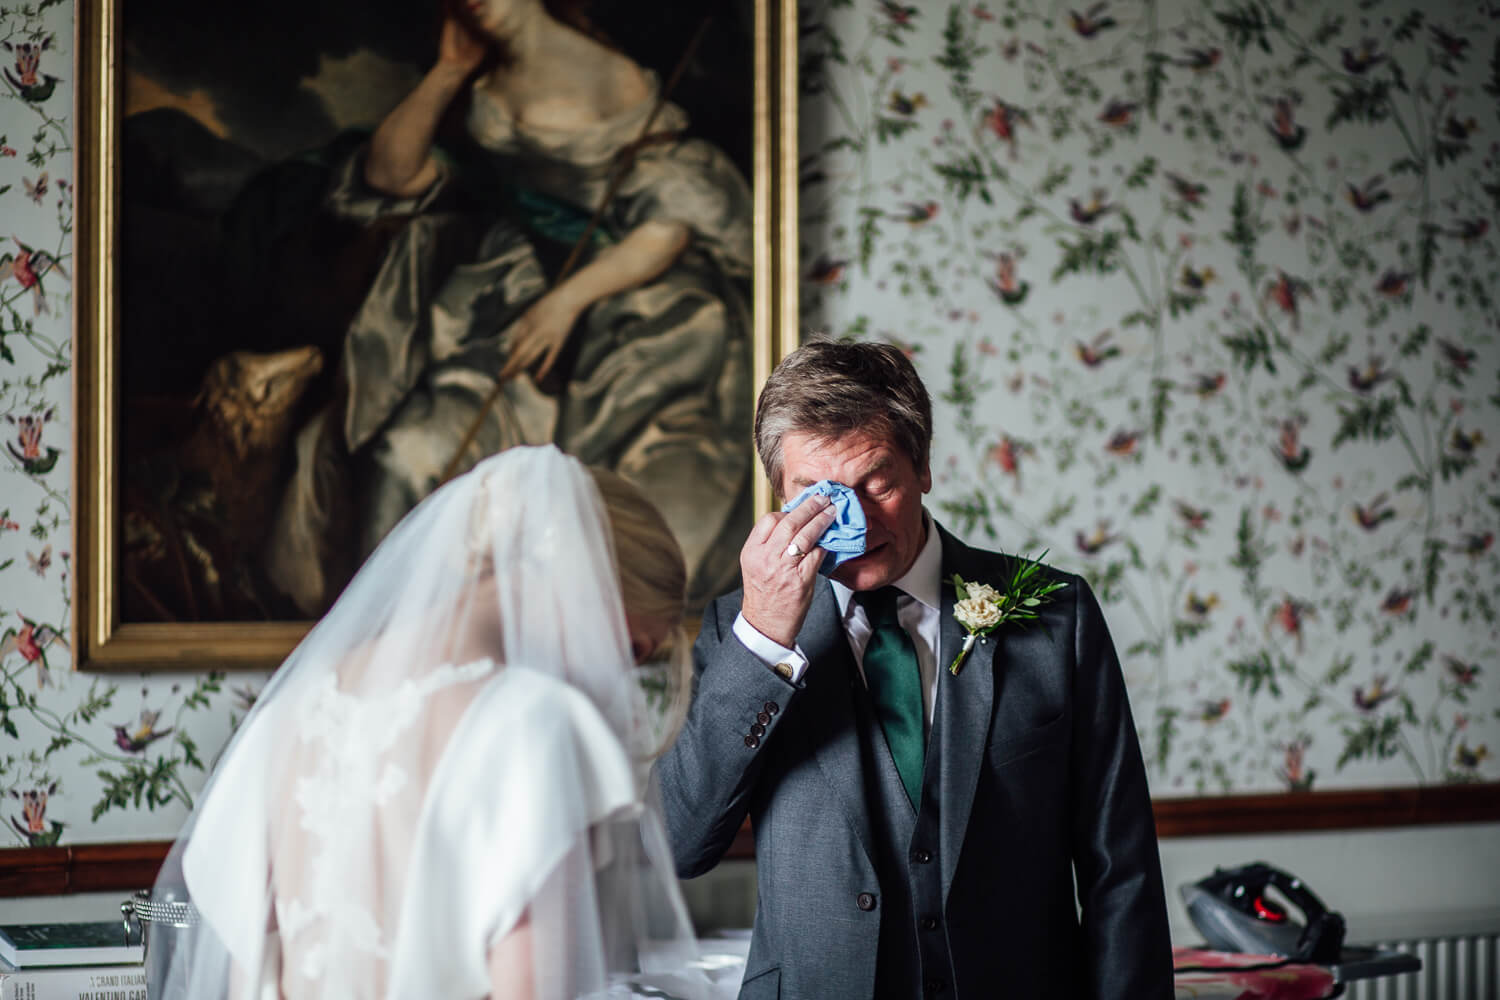 Emotional Father of Bride